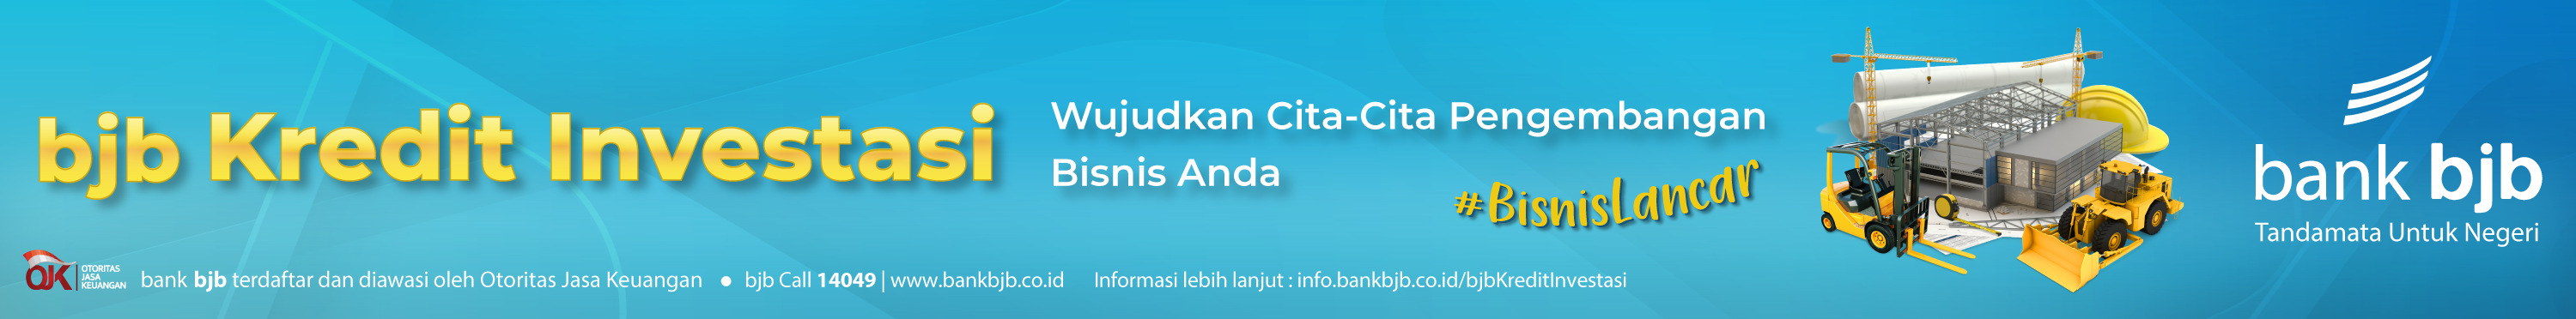 Contoh banner ads